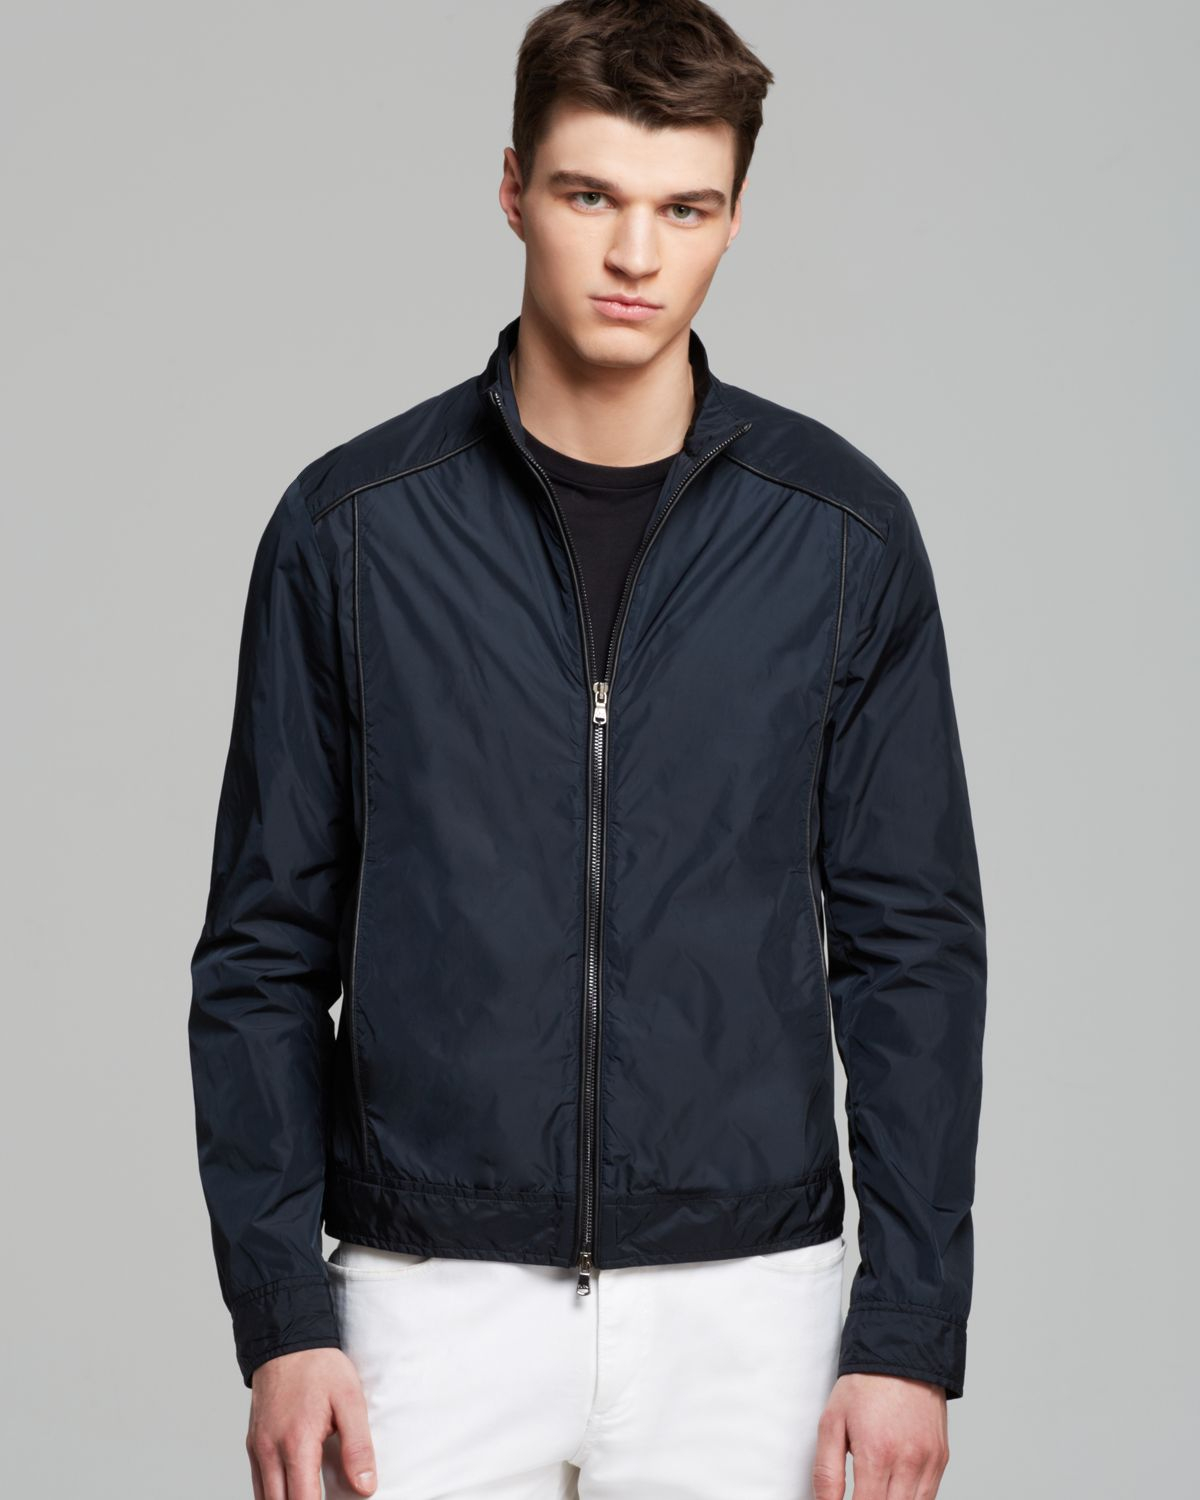 Michael kors Lightweight Jacket in Black for Men | Lyst